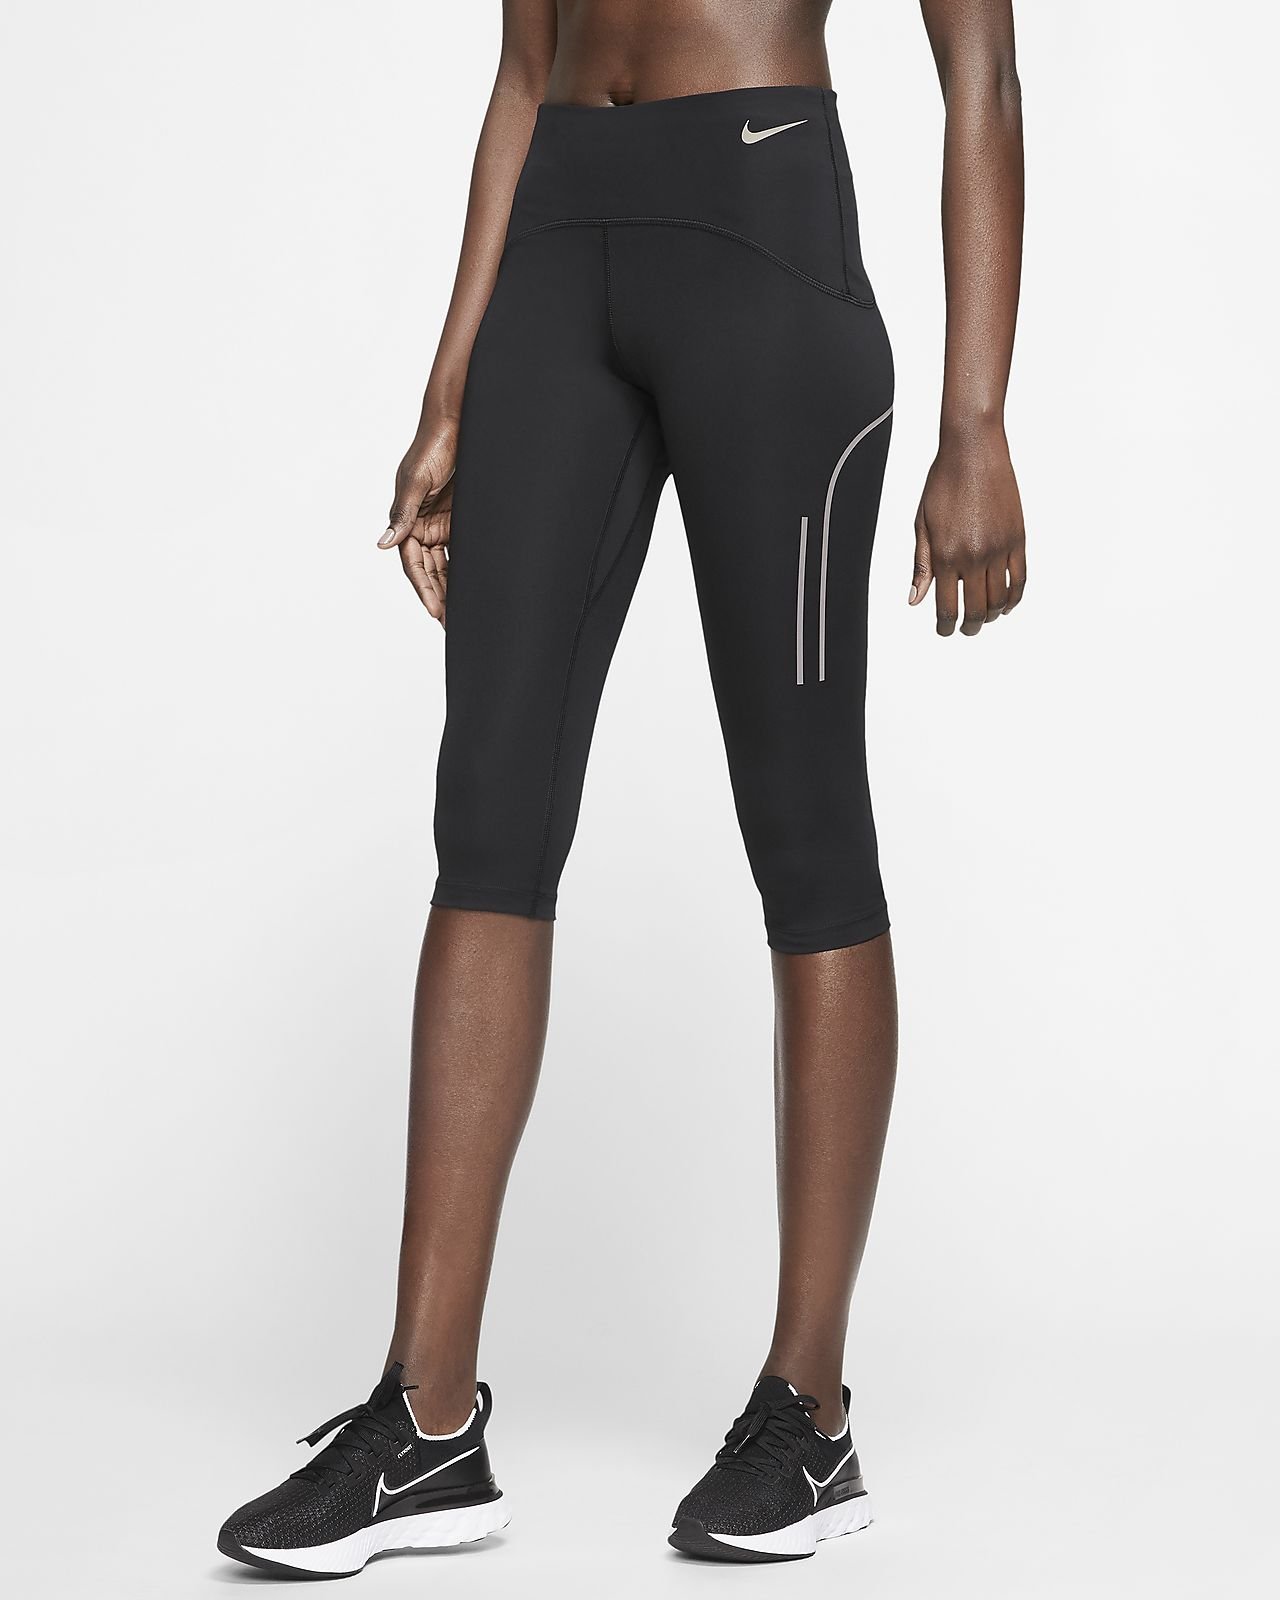 Nike Speed Women's Running Capri